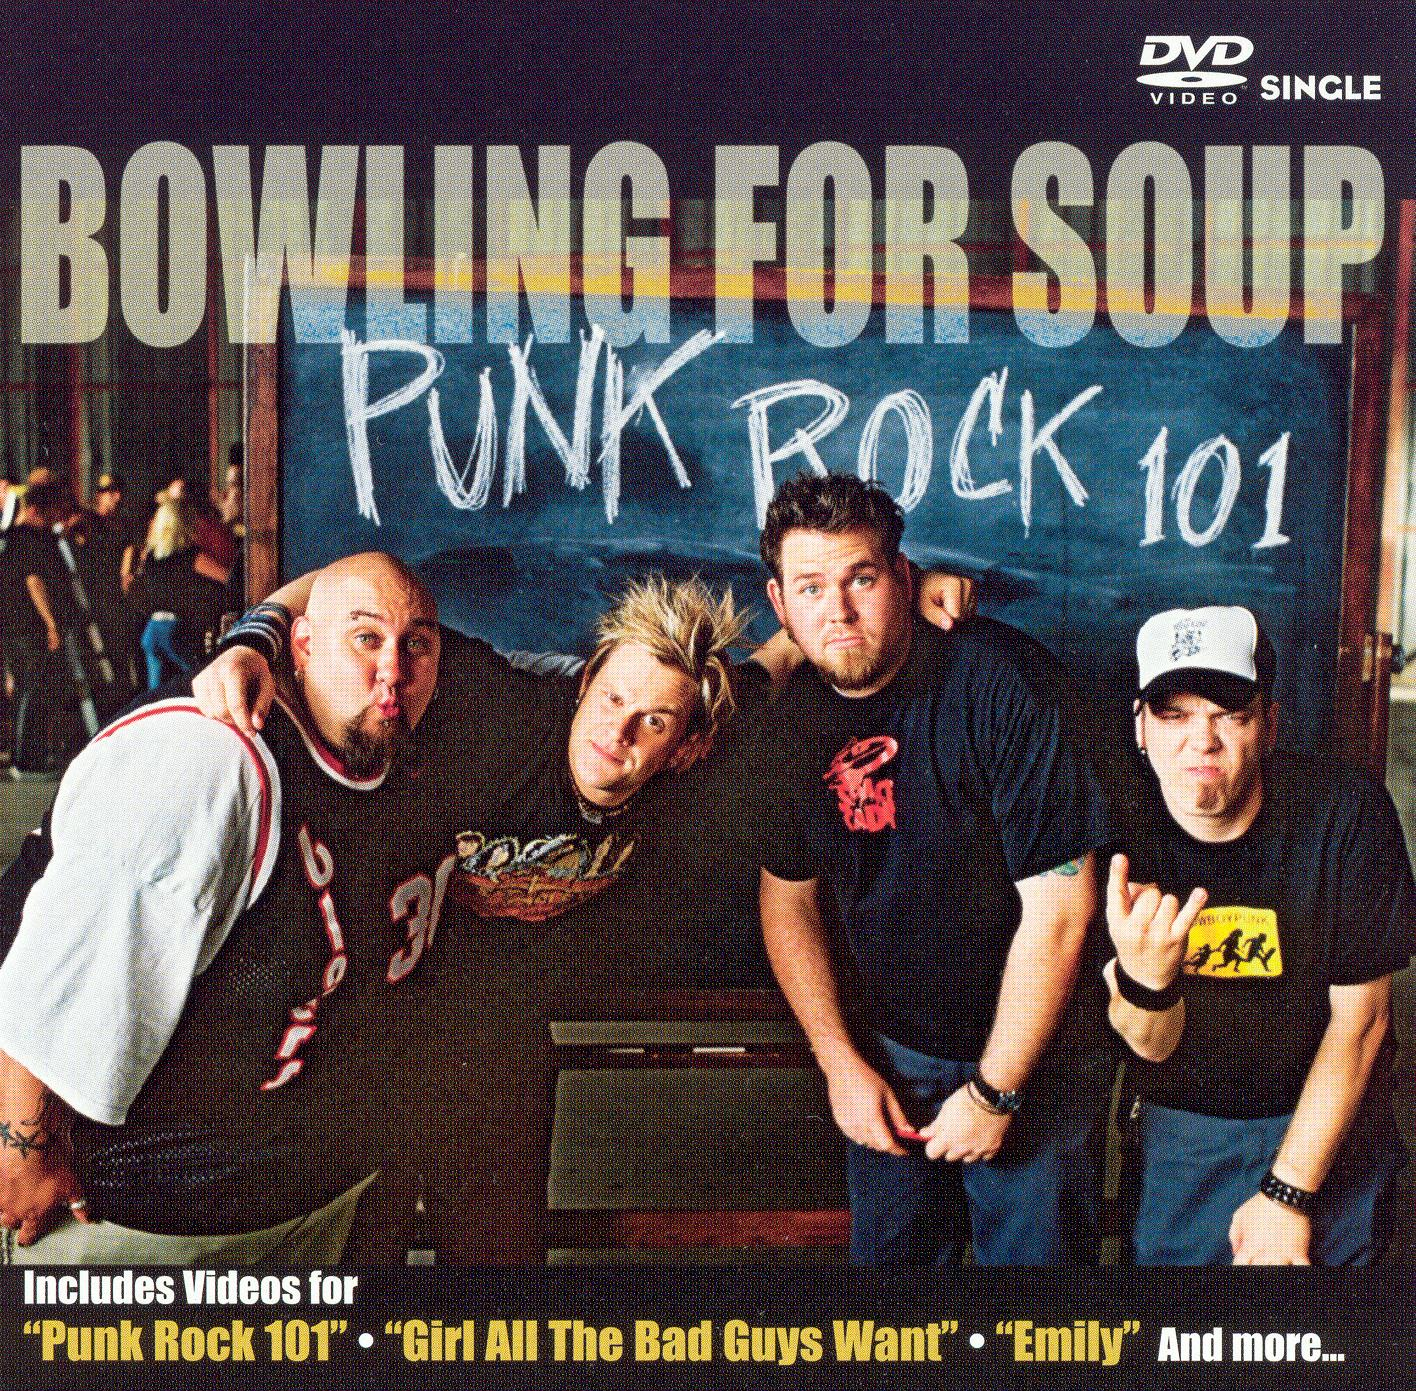 Bowling for Soup: Punk Rock 101